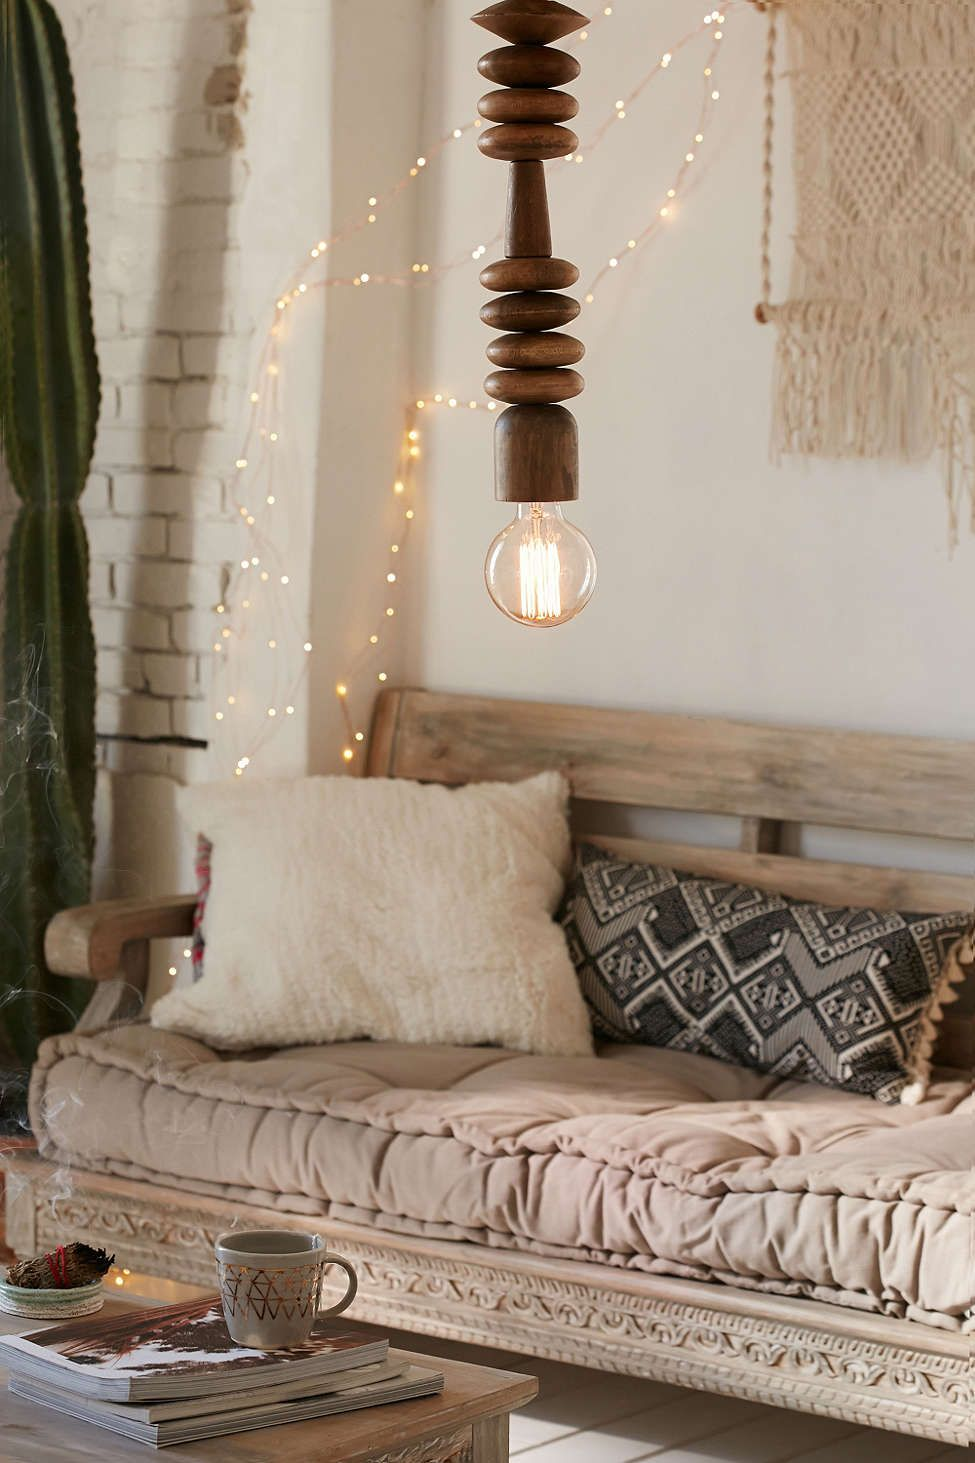 Stacked Wood Pendant Light Projects Pinterest Lighting Wiring Up Grow Lights Disregard The Im Talking About Copper Wire String Growing Wall Like Vines Caro